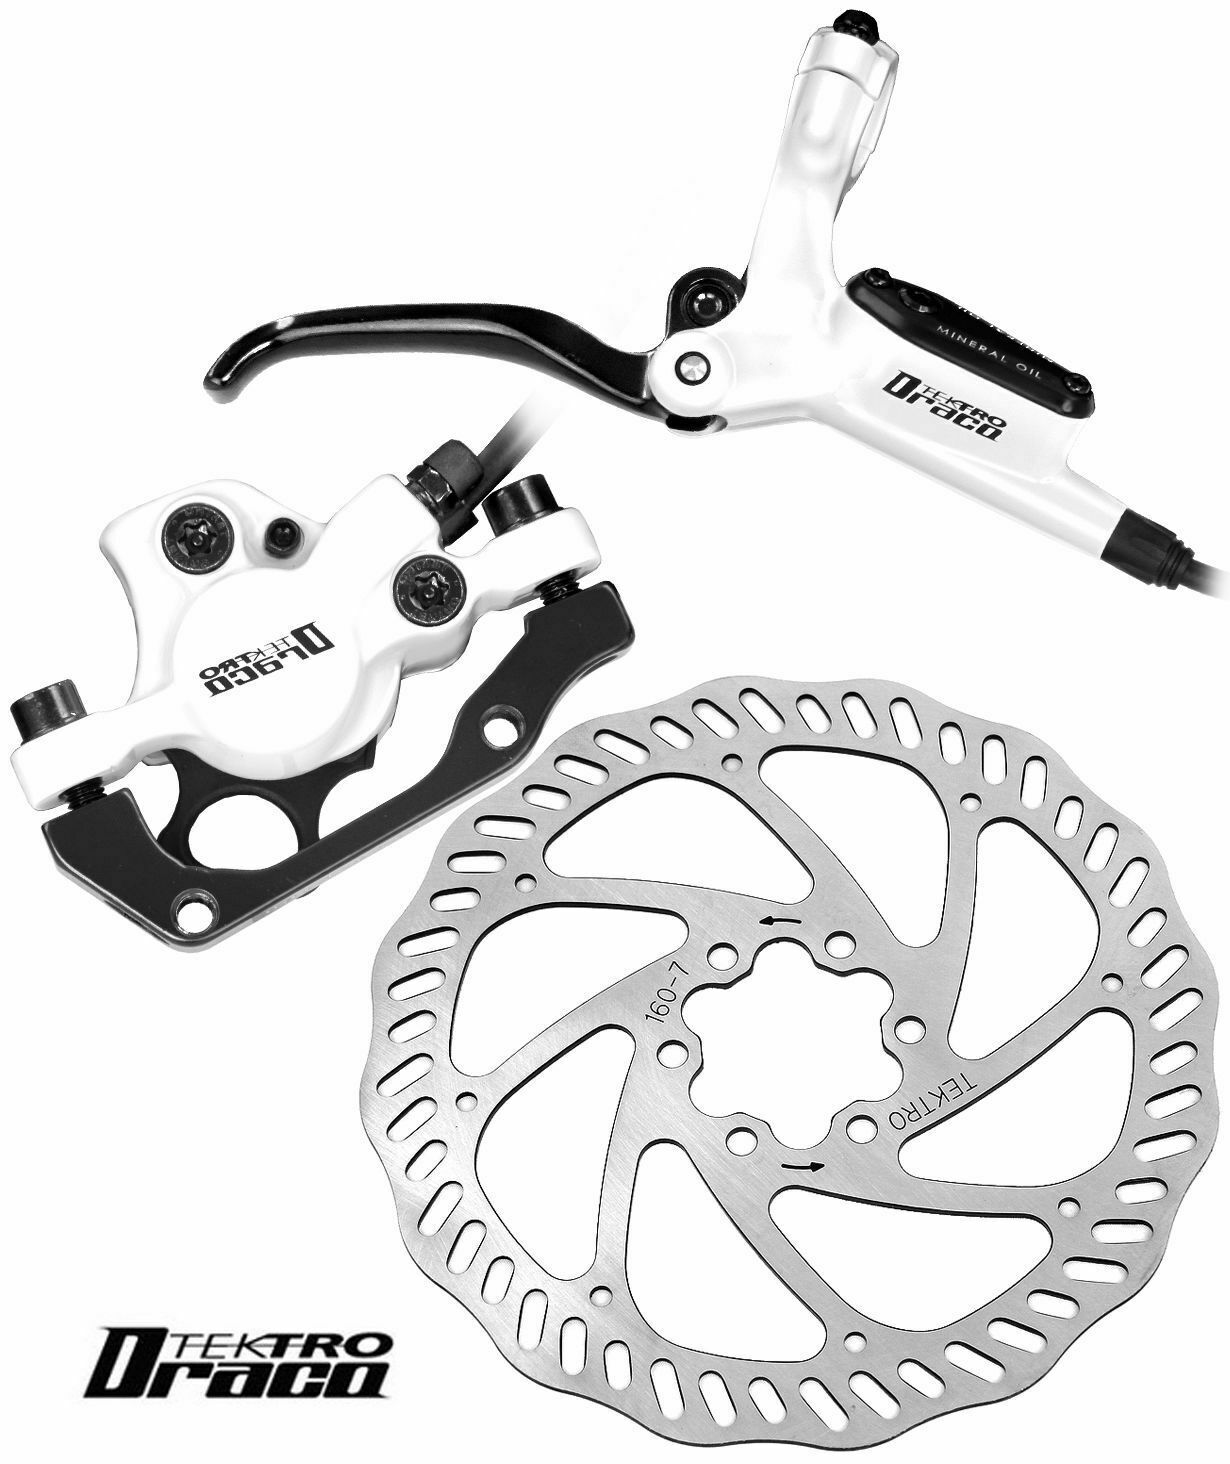 Tektro Draco Hydraulic Disc Brake Set with Levers Calipers and Rotors